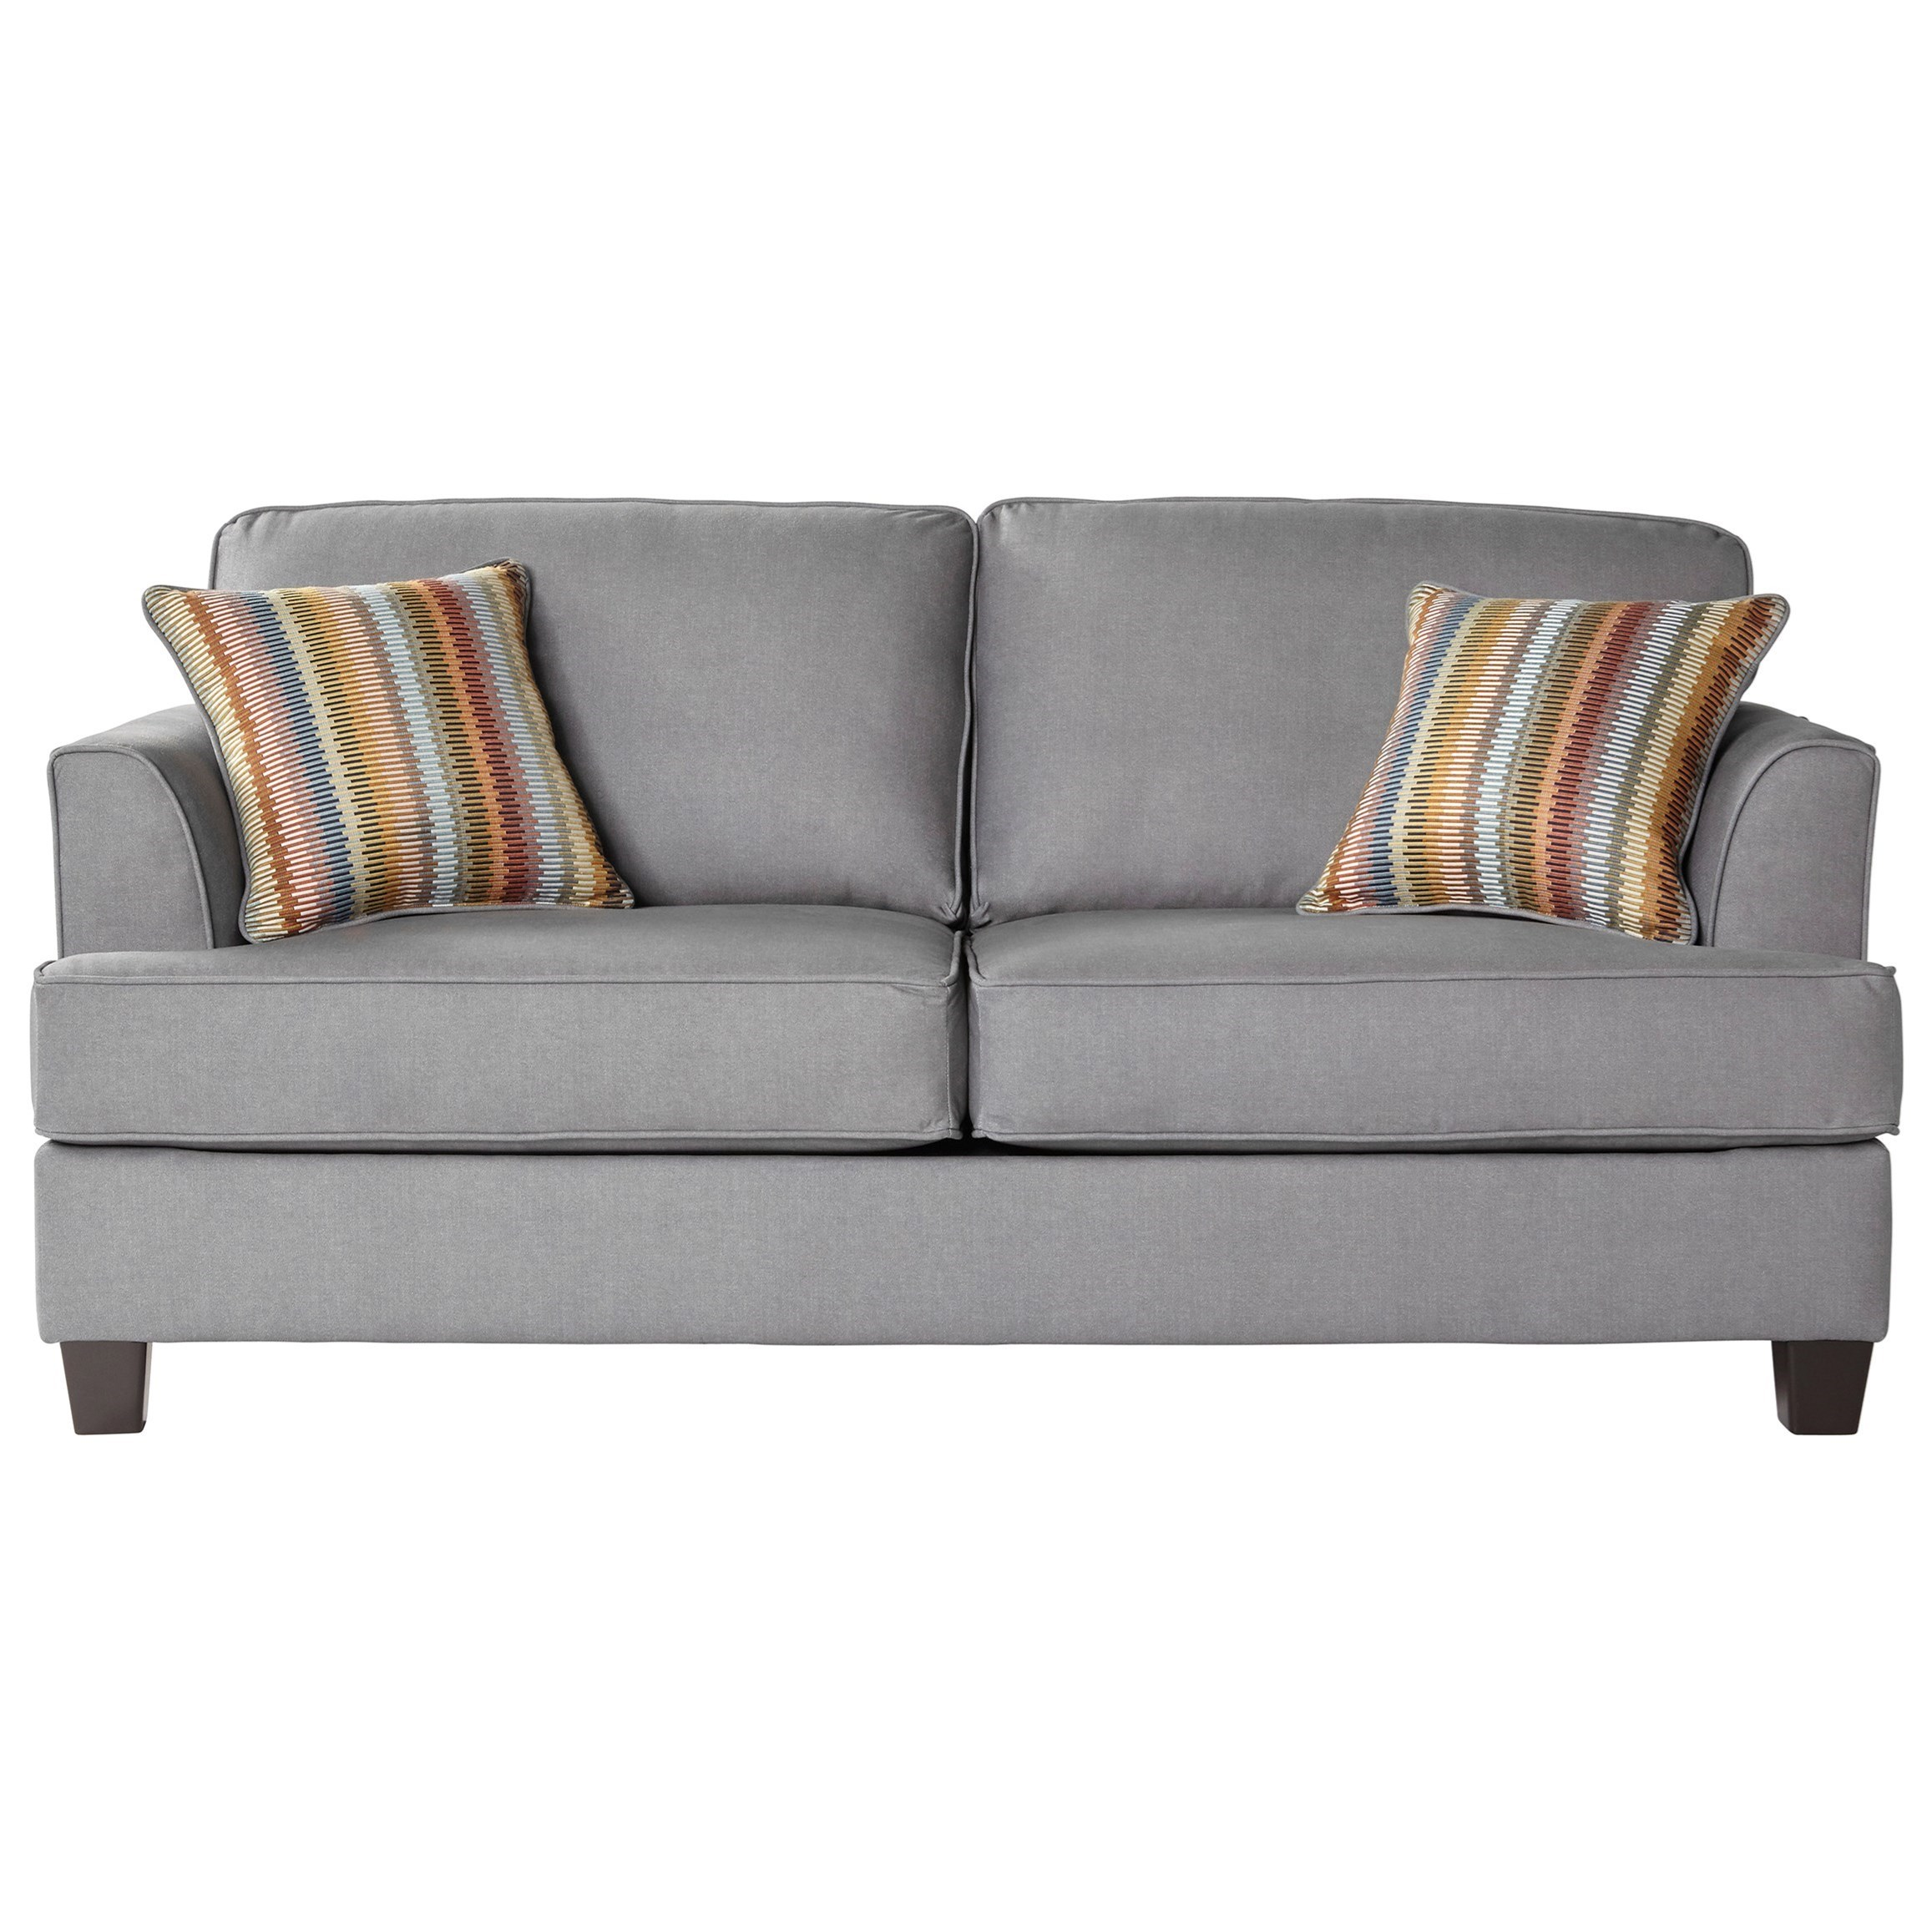 5650 Full Sleeper Sofa by Serta Upholstery by Hughes Furniture at Rooms for Less